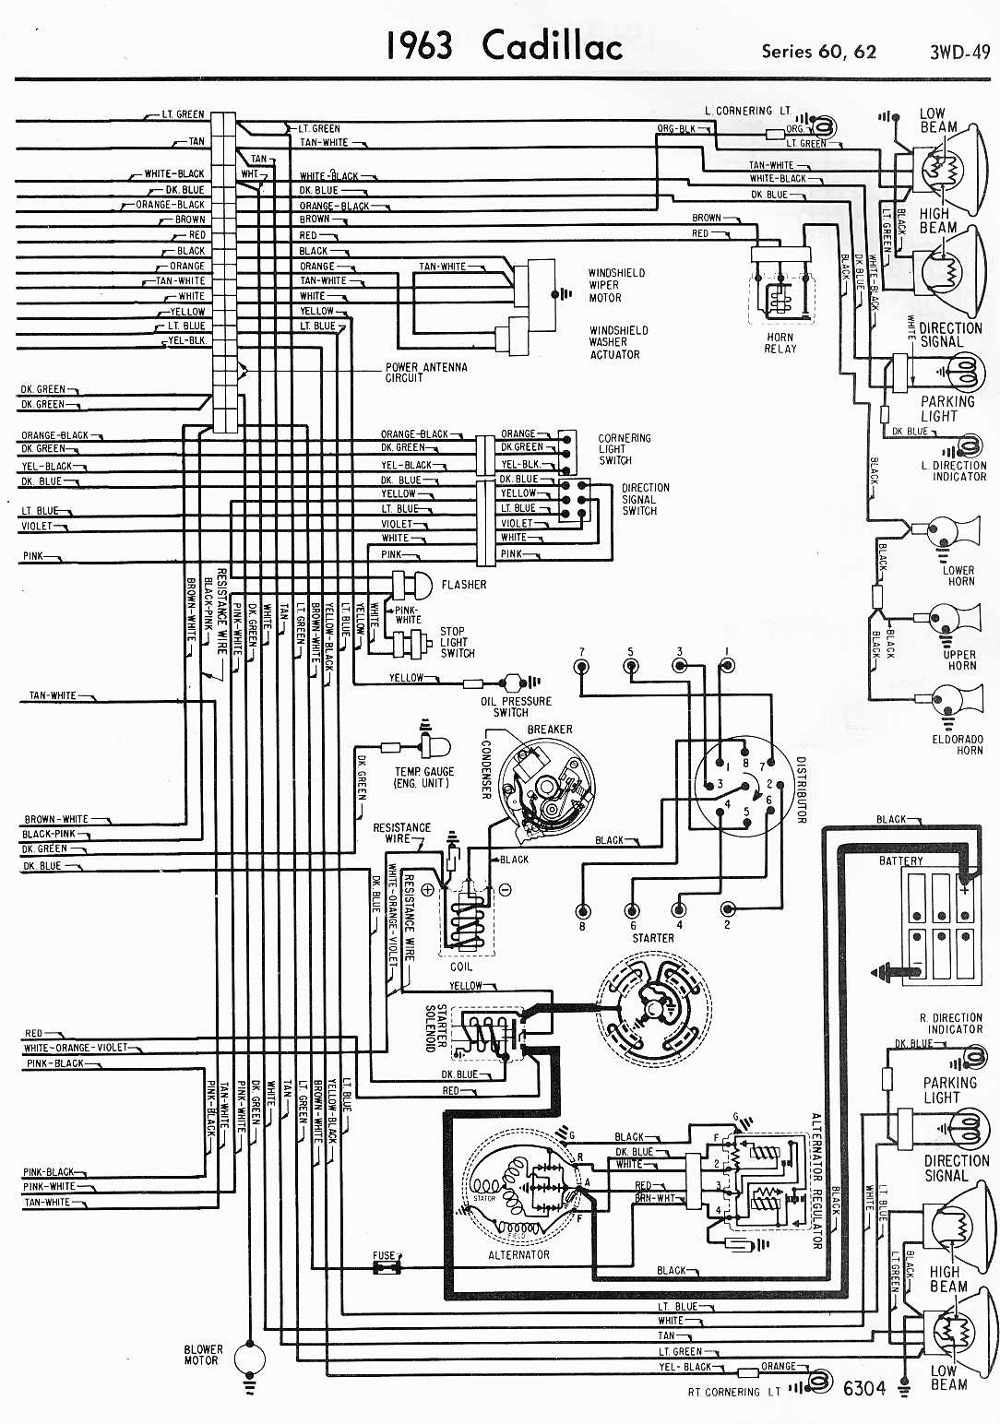 Wiring Diagrams Schematics Cadillac Series And Part on 1950 Dodge Wiring Diagram